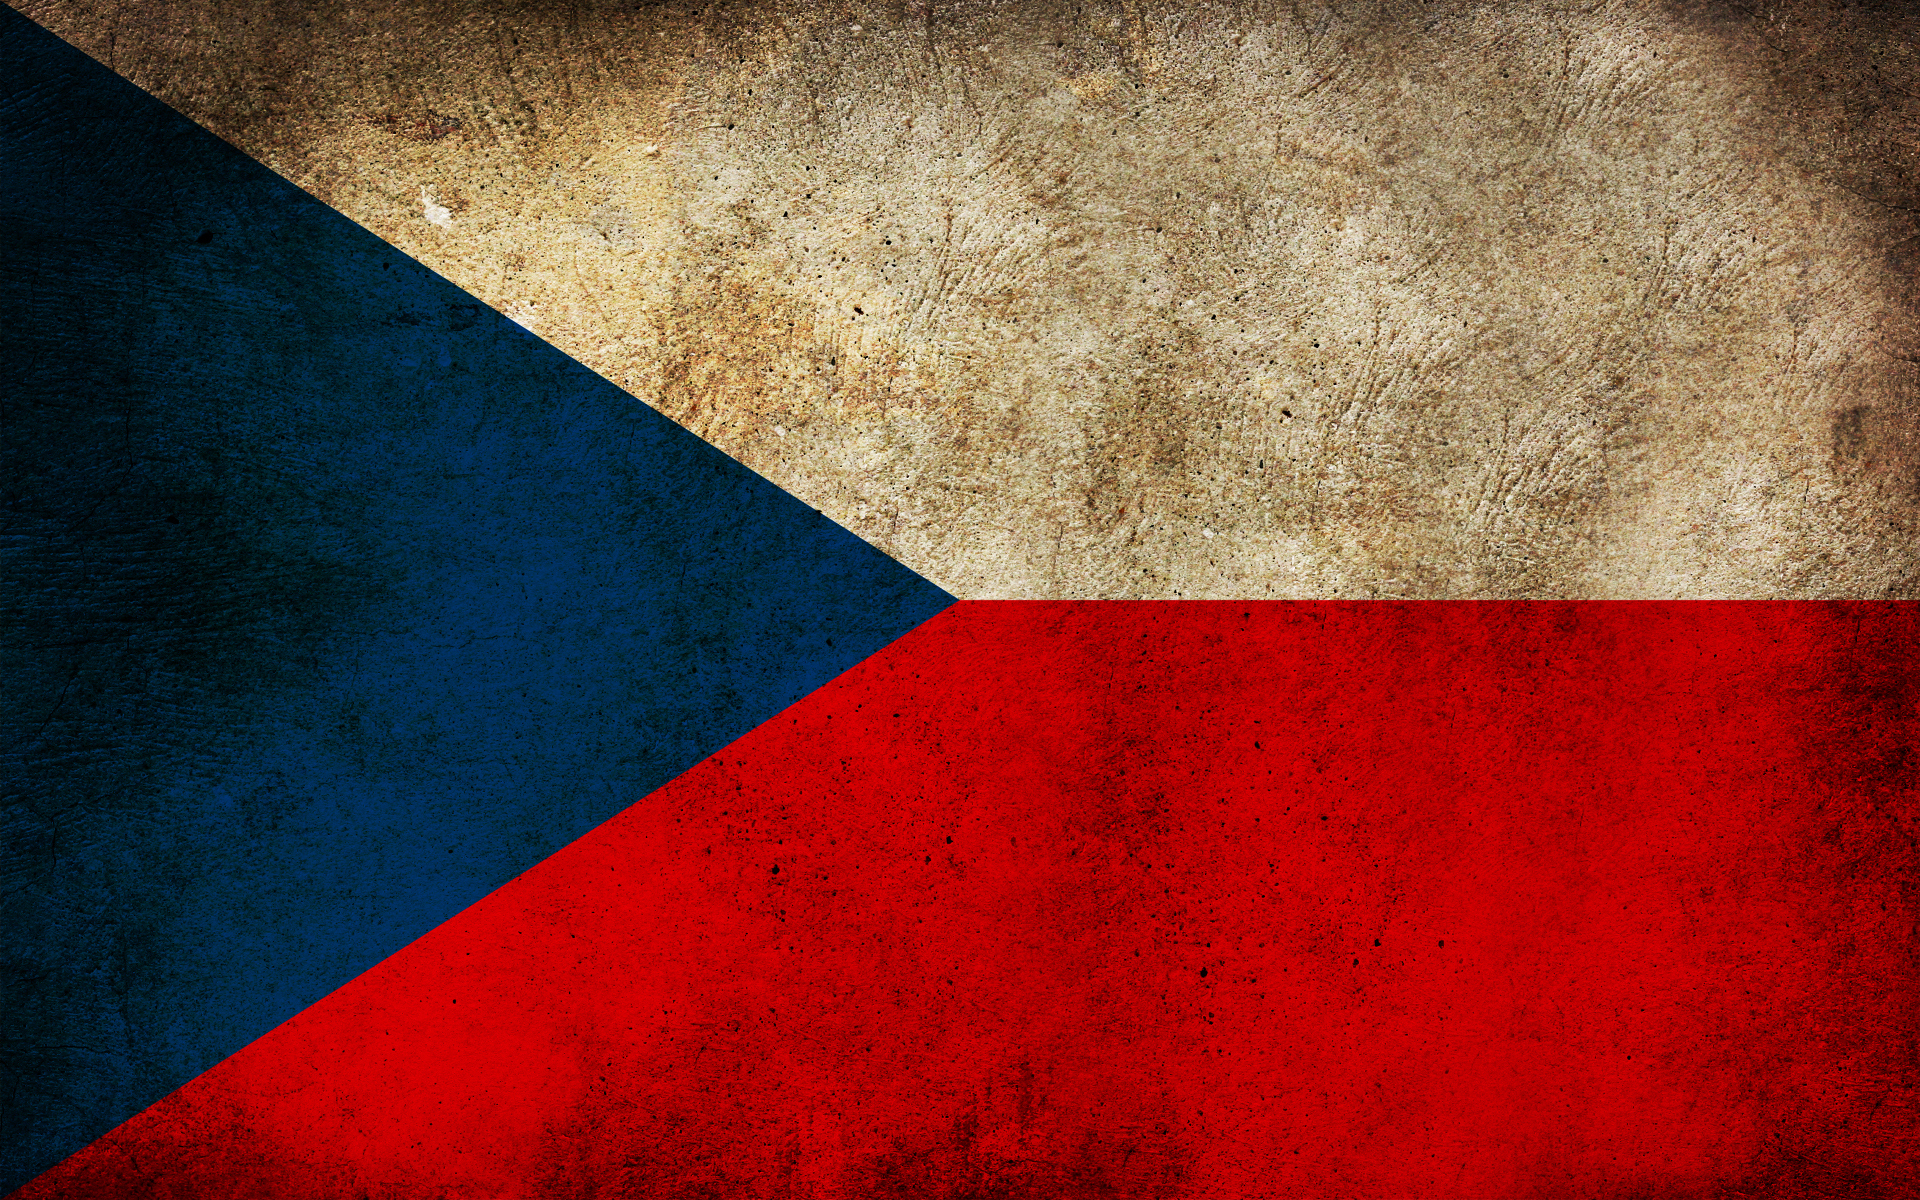 Czech Republic Grunge Flag BUZZERG 1920x1200